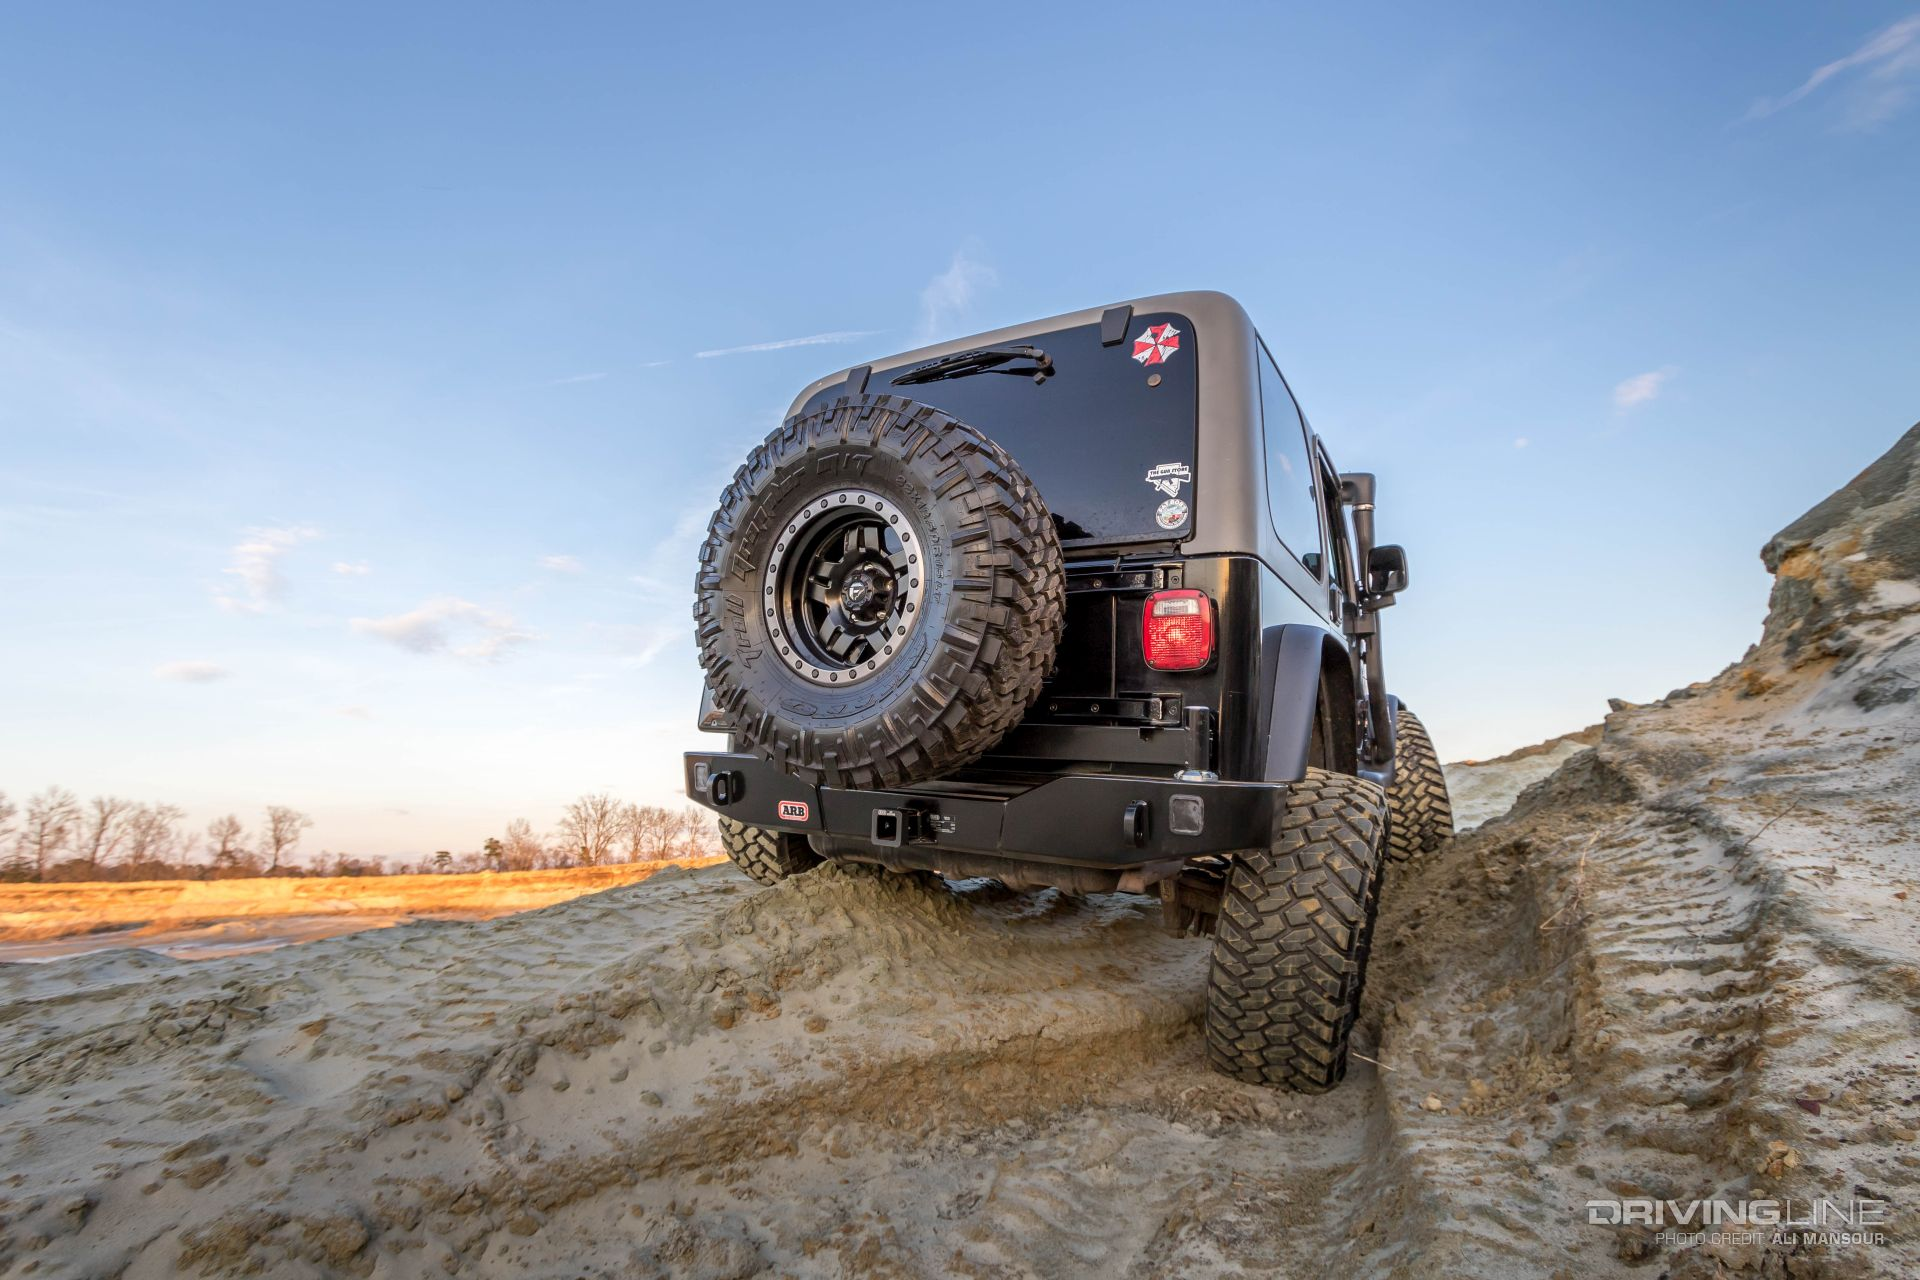 Jeep Wrangler Tj Build >> ARB Jeep Wrangler Rear Bumper and Tire Carrier Review | DrivingLine